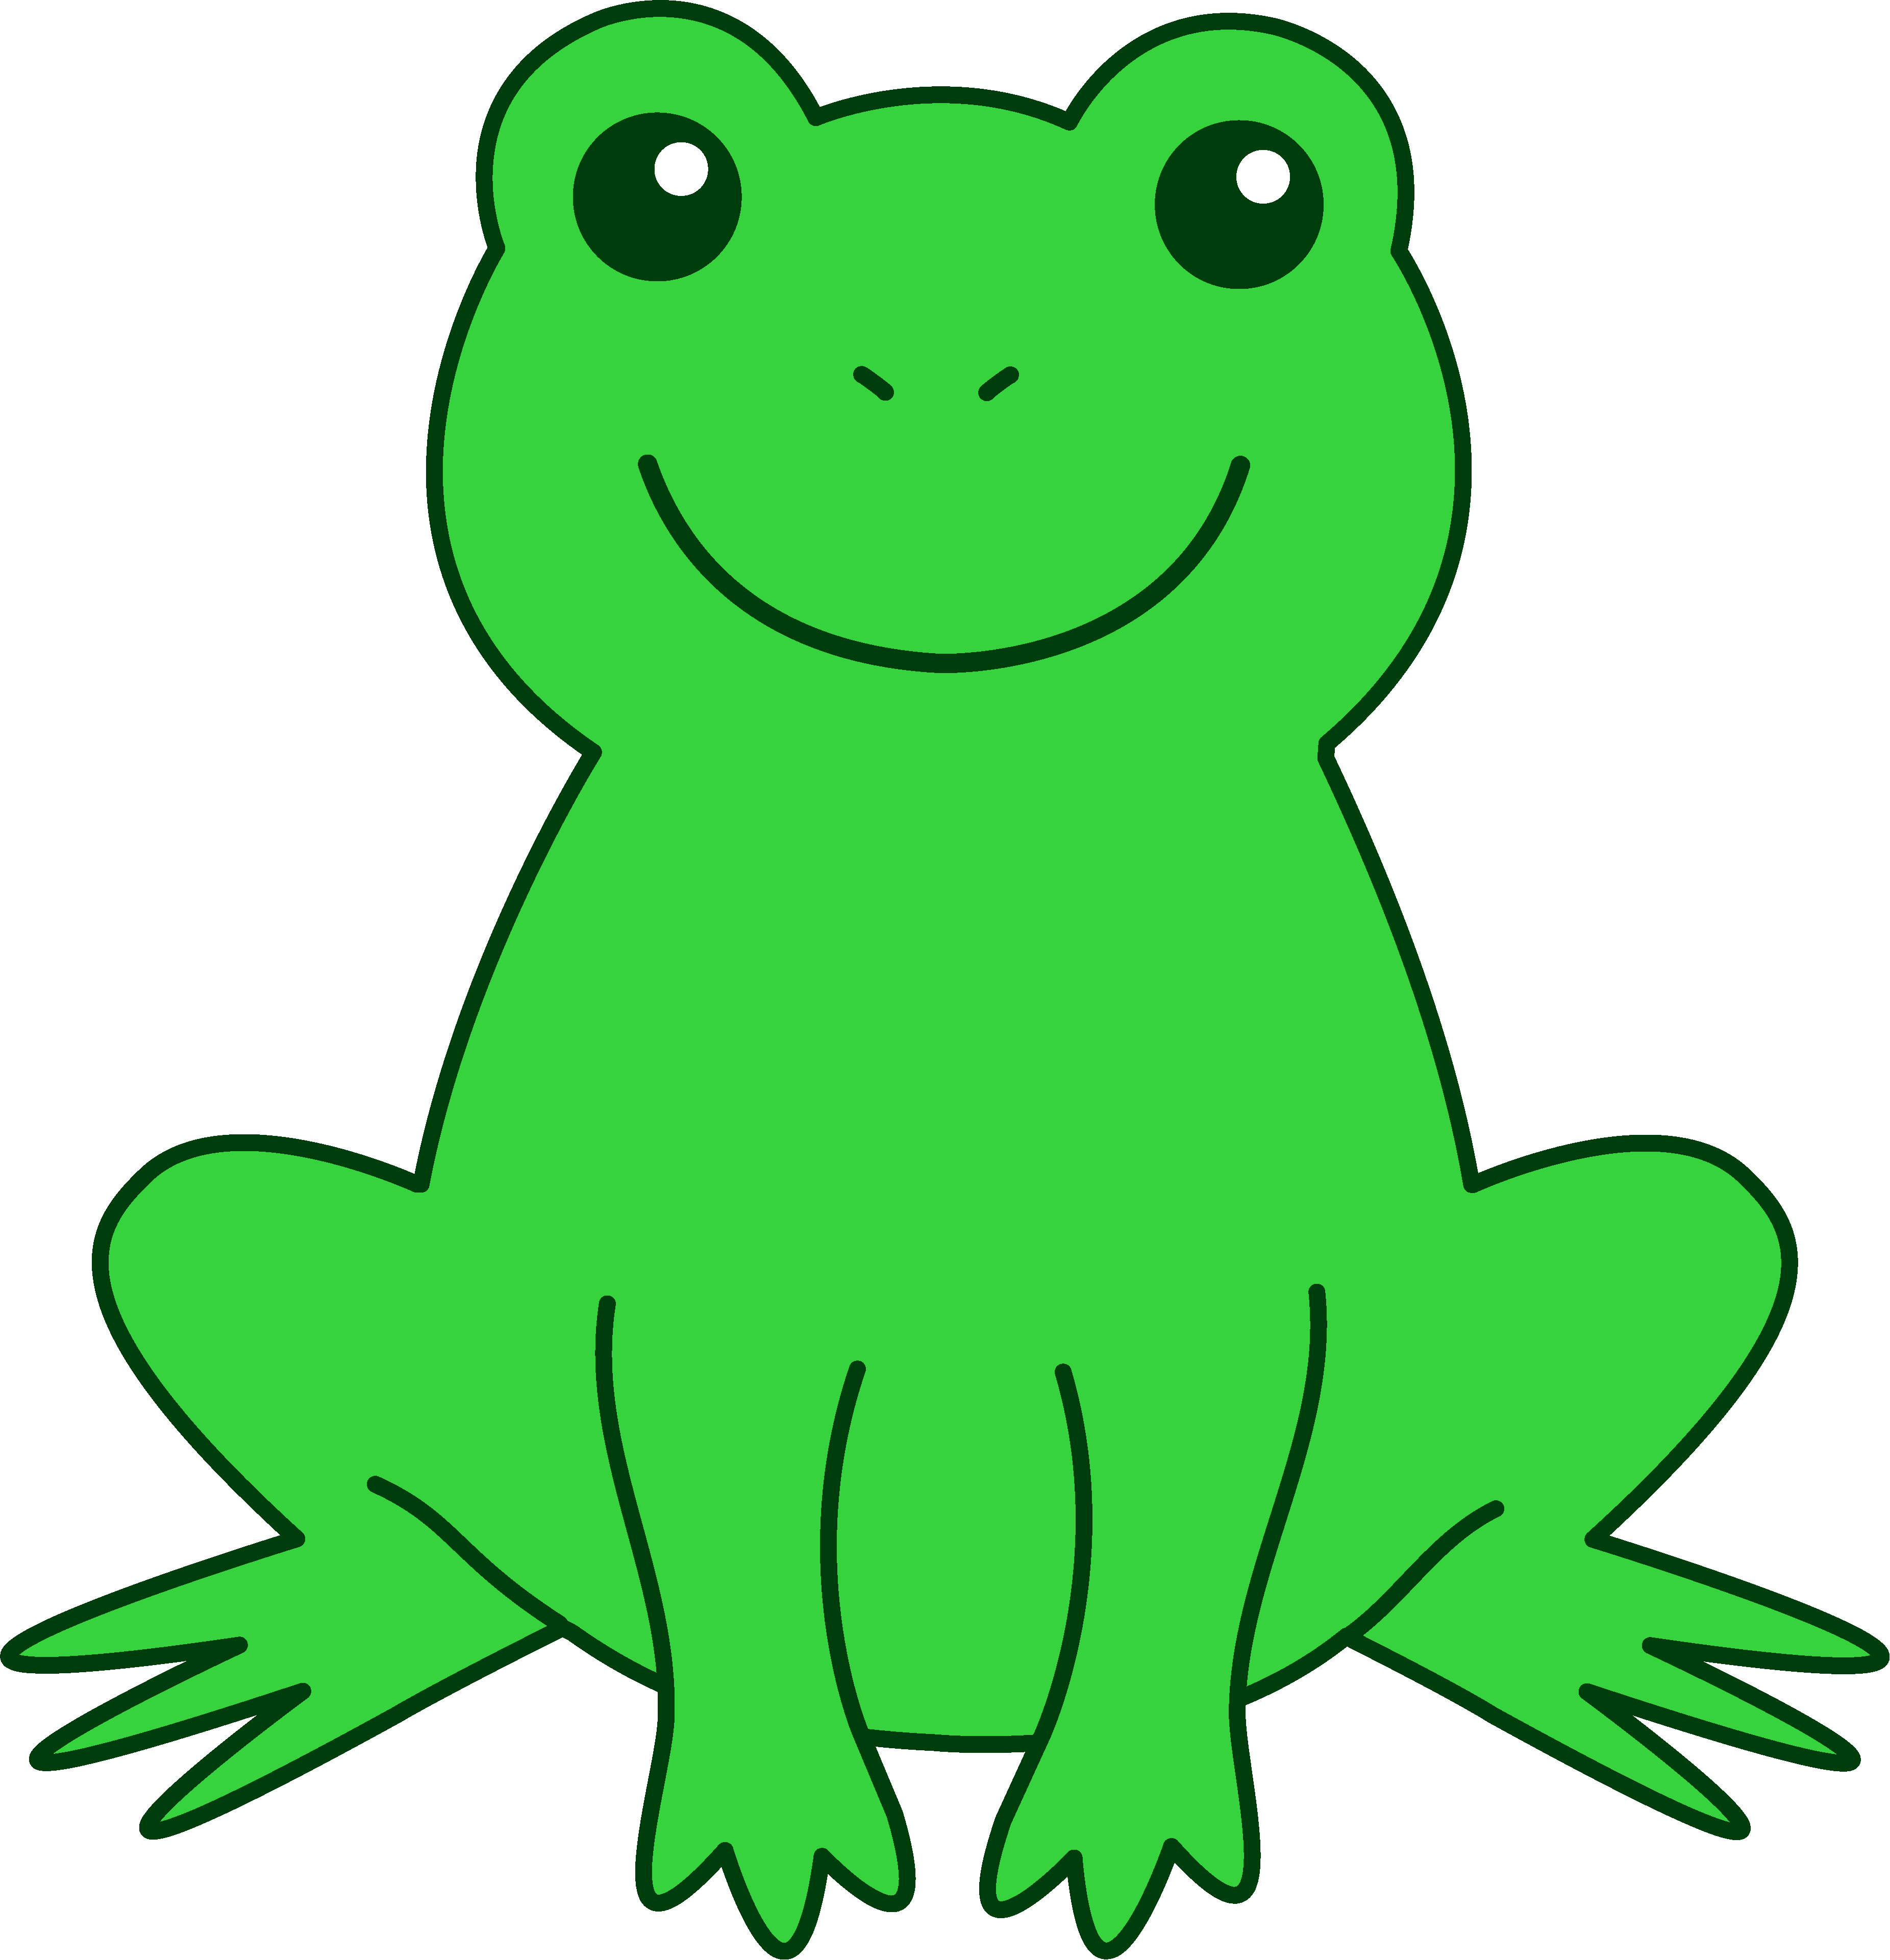 tadpole clipart at getdrawings com free for personal use tadpole rh getdrawings com